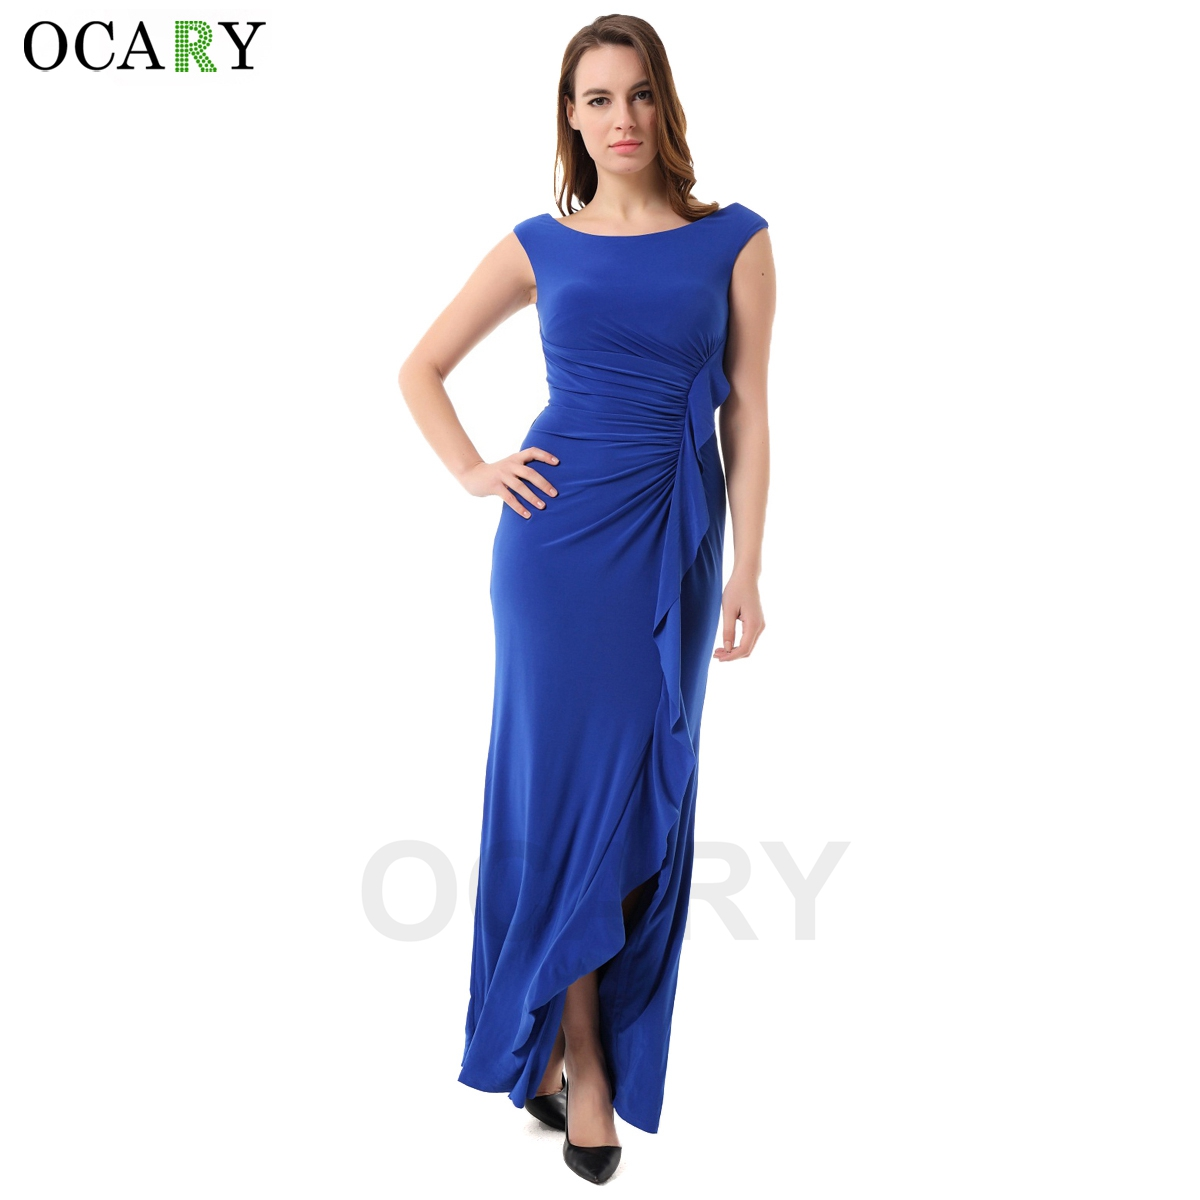 Buy Cheap OCARY Brand Quality Fashion Ruffles Dress Elegant Women Boho Maxi Party Dress Casual 2016 Summer Dress Plus Size 2XL Vestidos